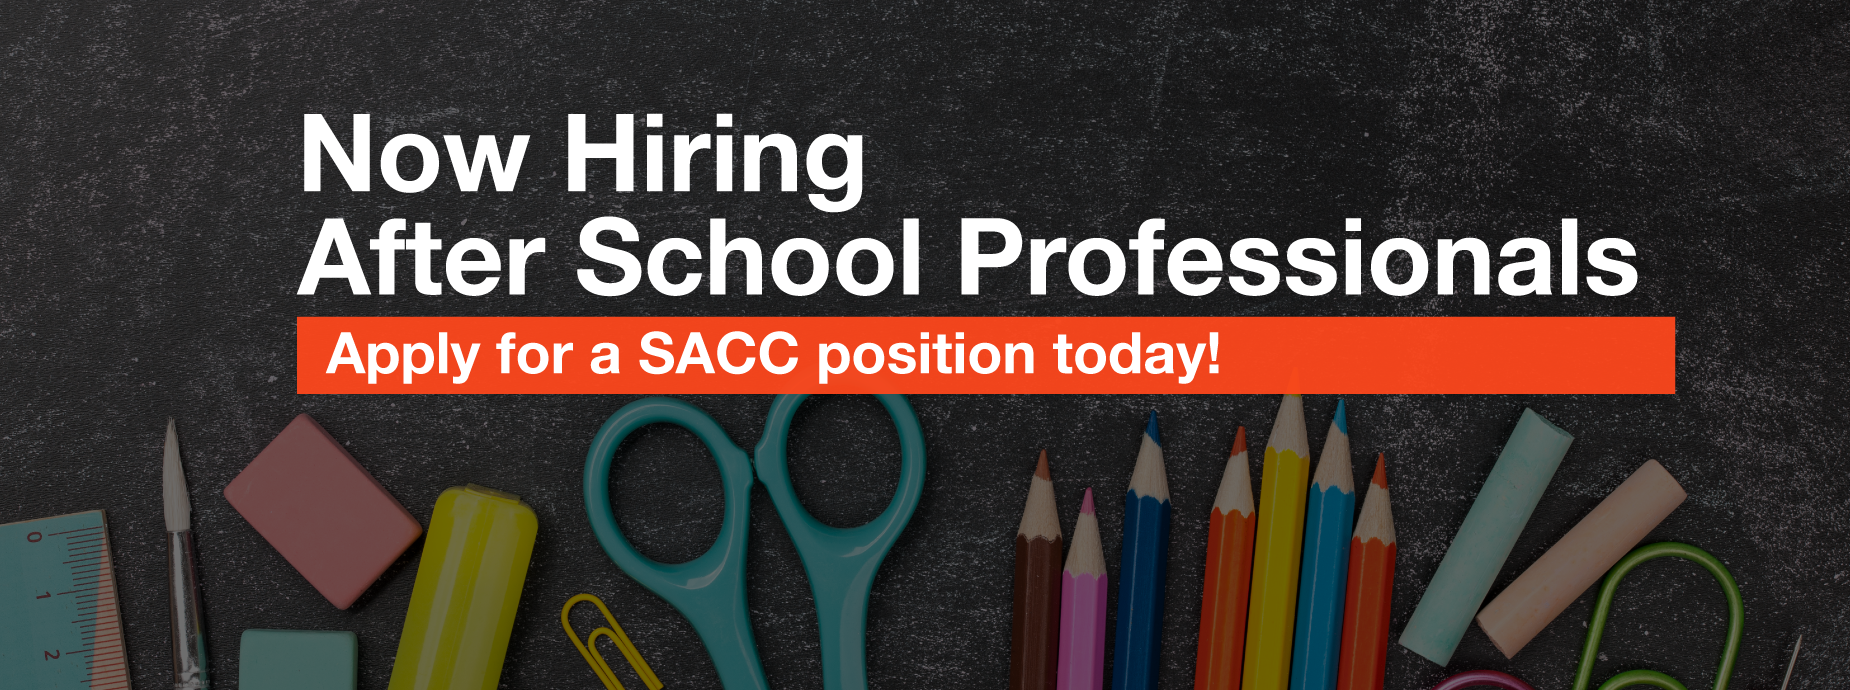 Now Hiring SACC Professionals Banner